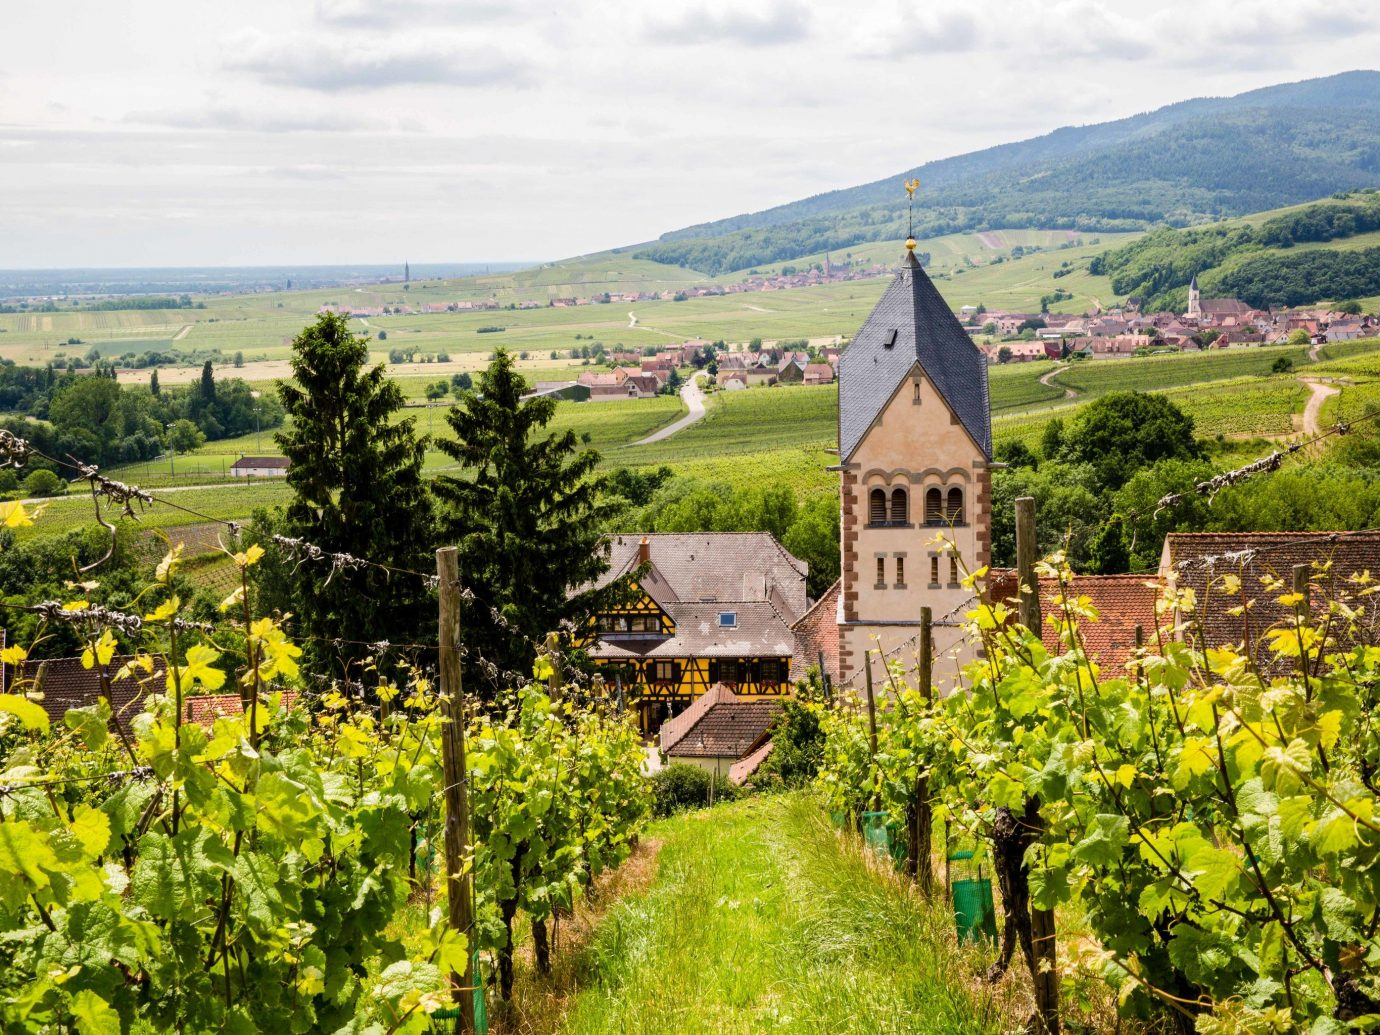 europe Outdoors + Adventure Trip Ideas agriculture mountain village Vineyard sky Village flower rural area plant field mount scenery hill estate mountain landscape tree national trust for places of historic interest or natural beauty house cottage meadow Farm tourism mountain range